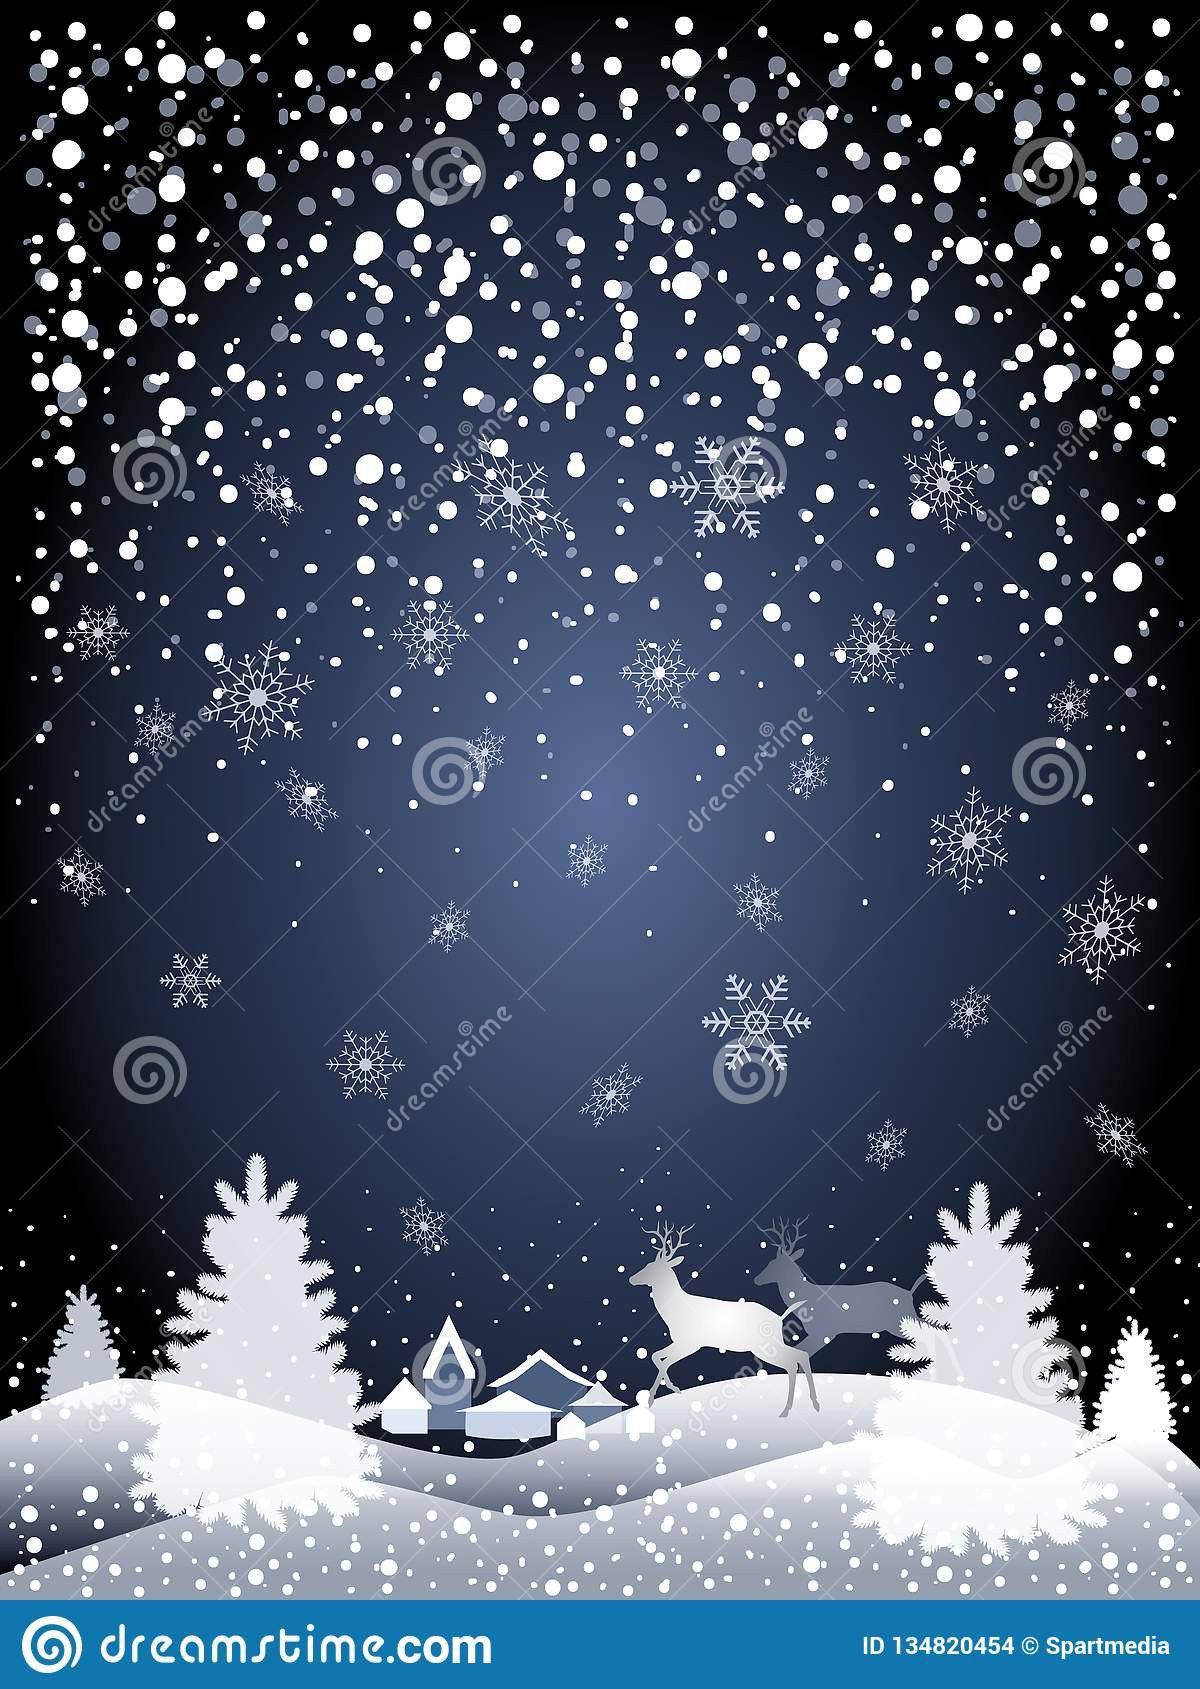 2019 Winter Fairy Tale Holiday Happy New Year Christmas Snowy Forest Landscape with reindeer